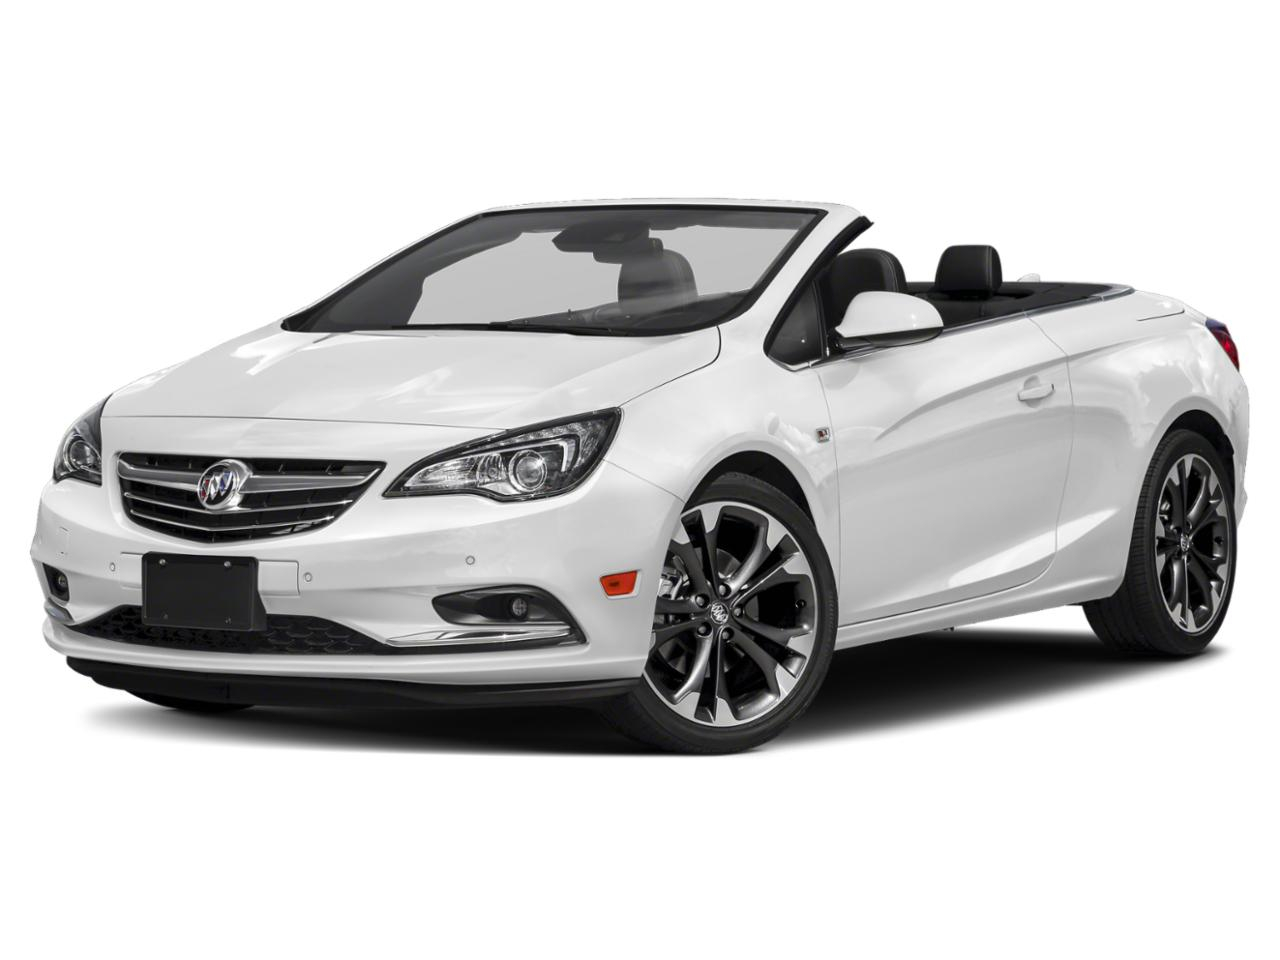 Learn About This 2019 Buick Cascada For Sale In Tacoma New 2021 Buick Cascada Brochure, Colors, Build